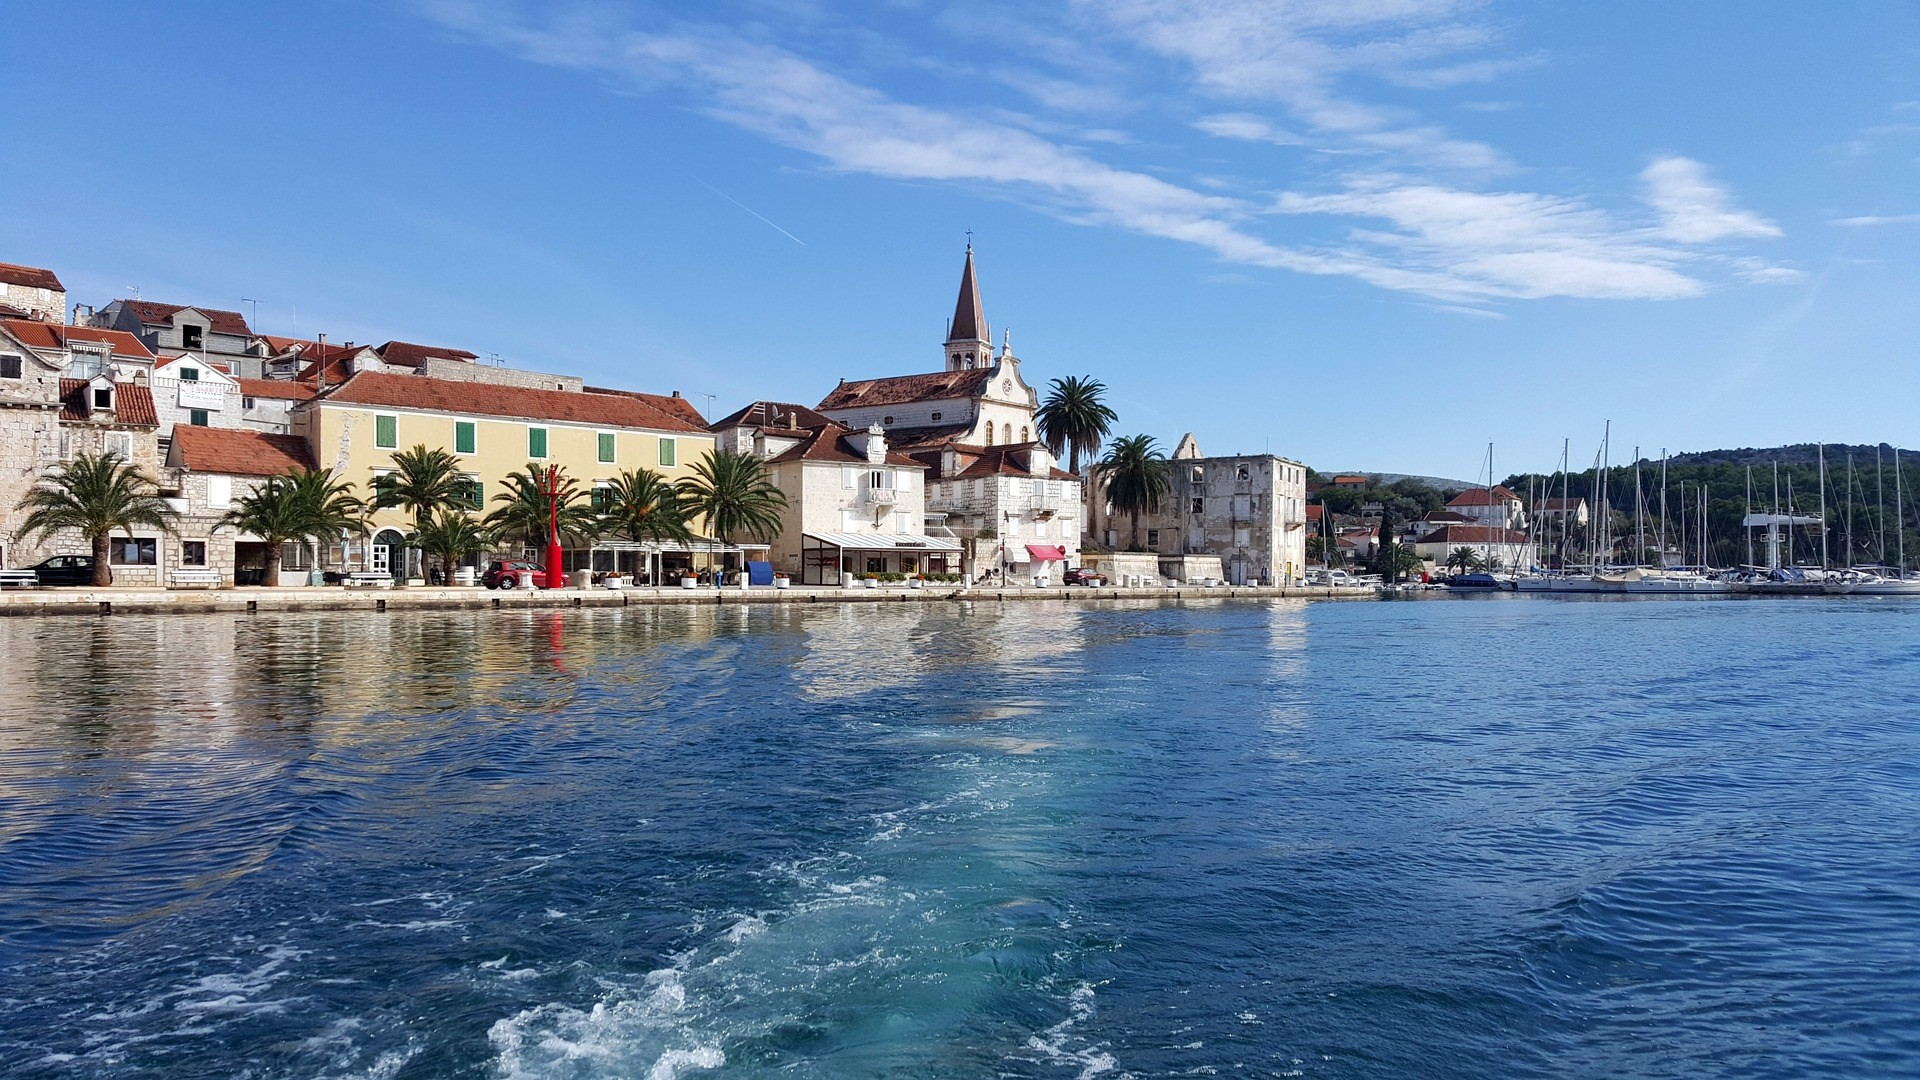 Milna (Brač Island) - Adriatic Sea | Croatia Cruise Croatia Cruise